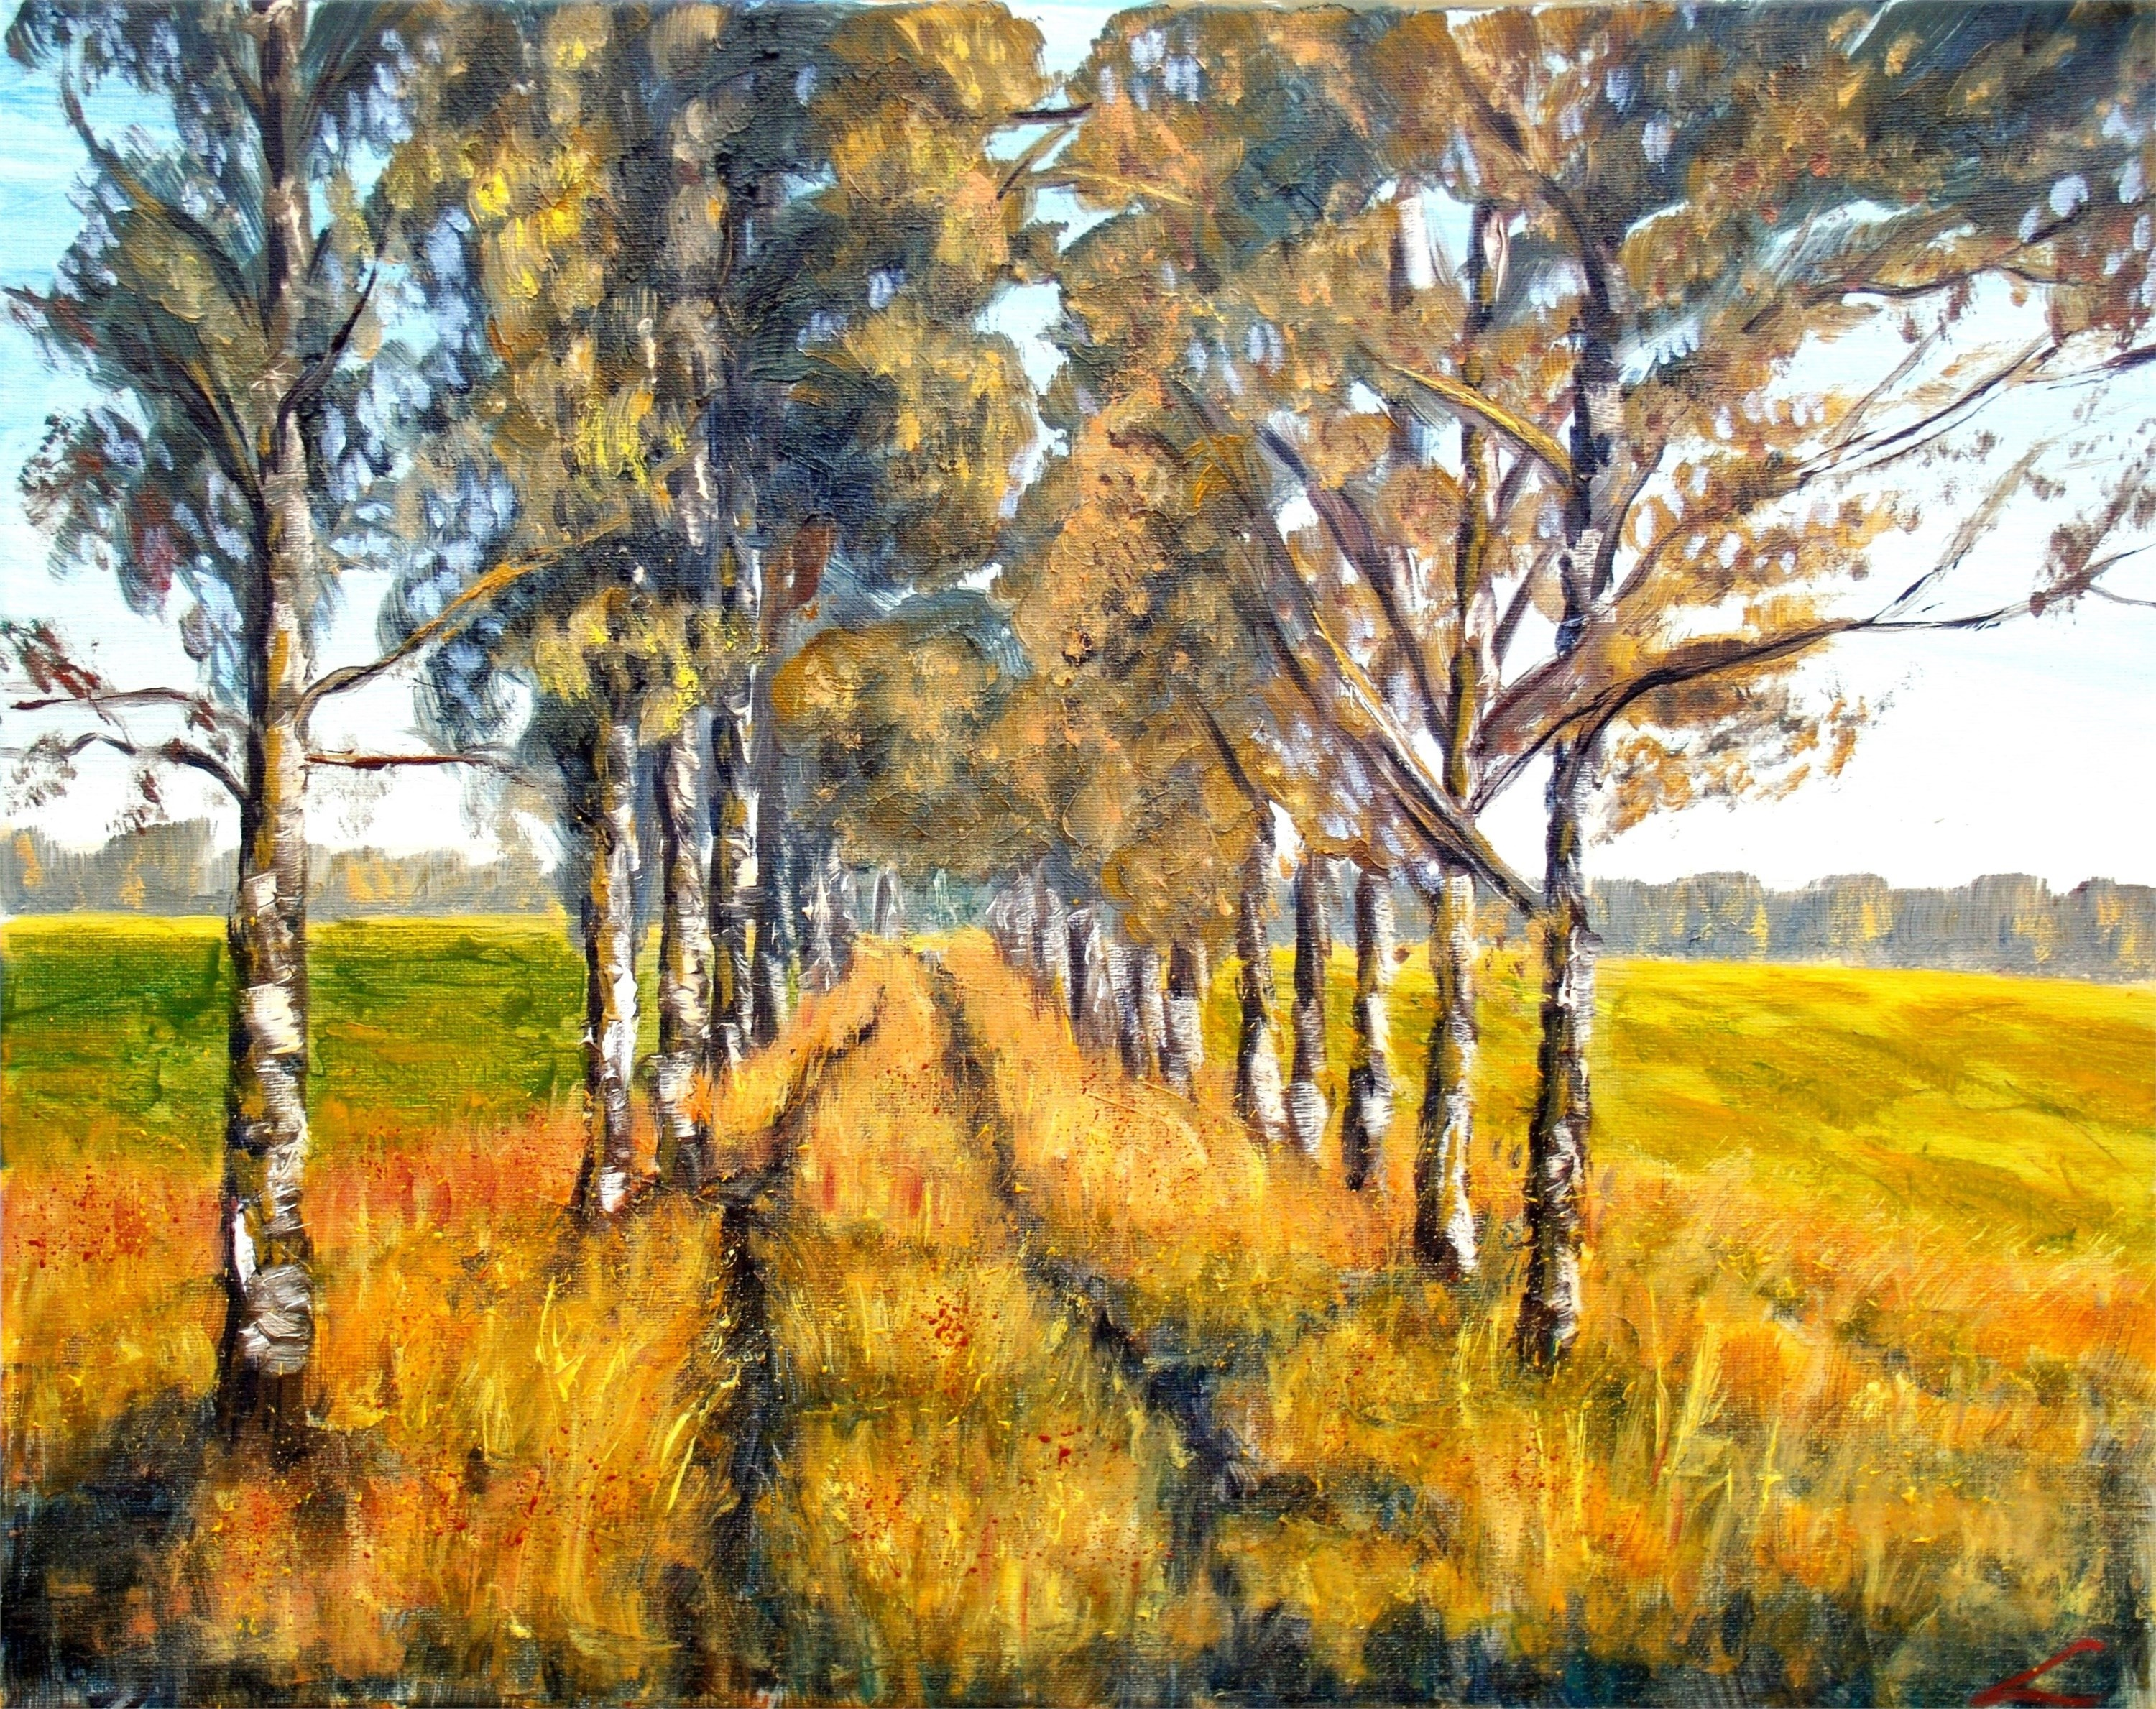 Golden Road, original Landscape Canvas Painting by Elena Sokolova